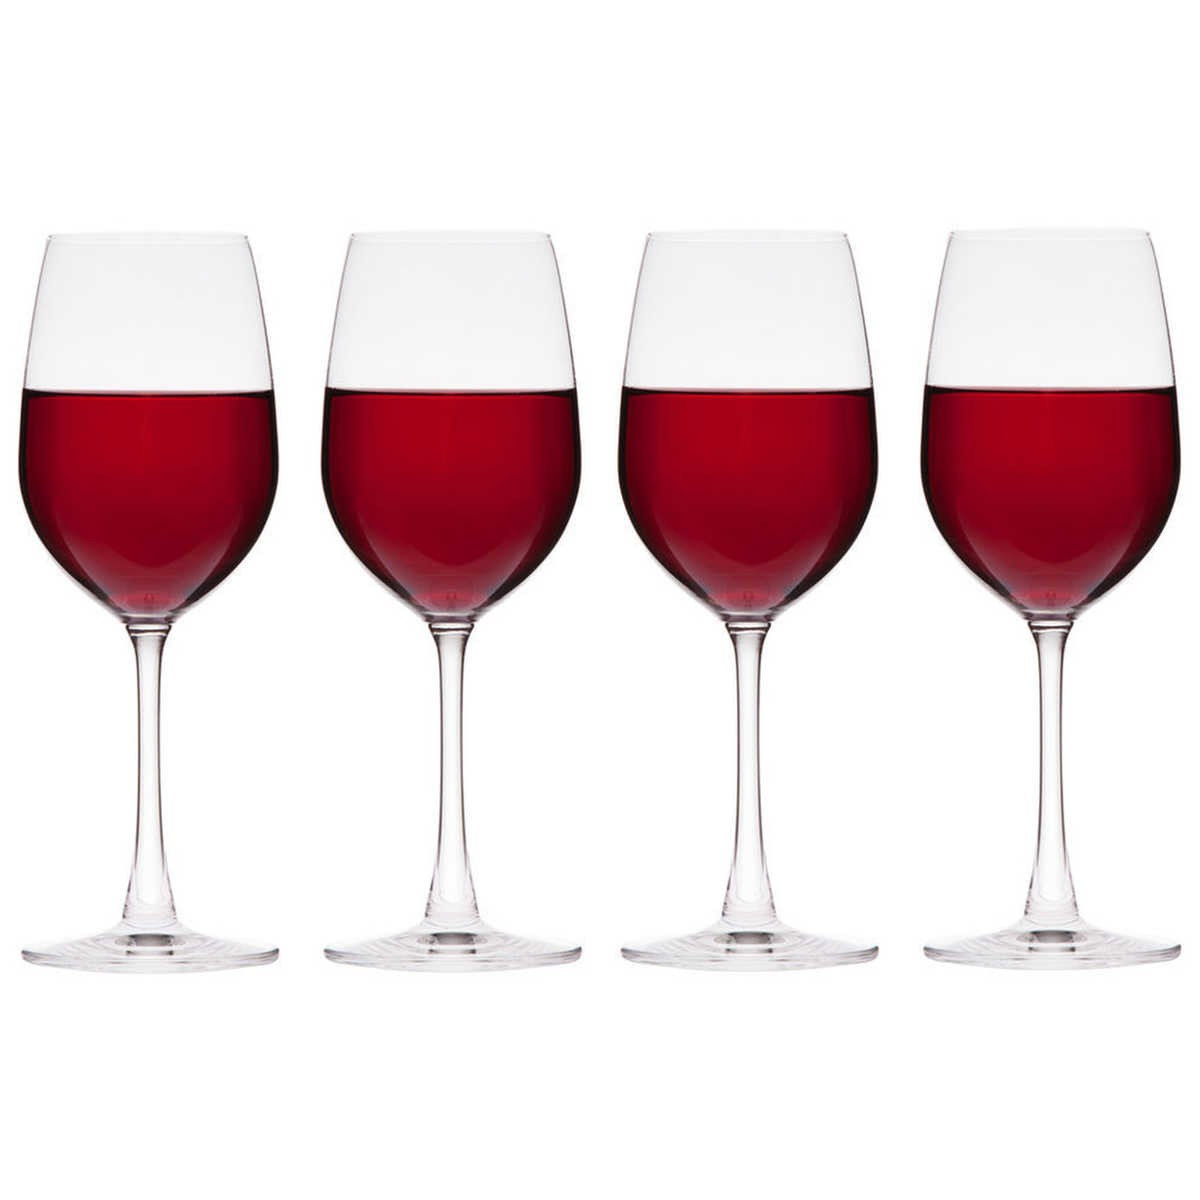 Big Red Wine Glasses Wiltshire Salute Set Of 4 Red Wine Glasses Big W